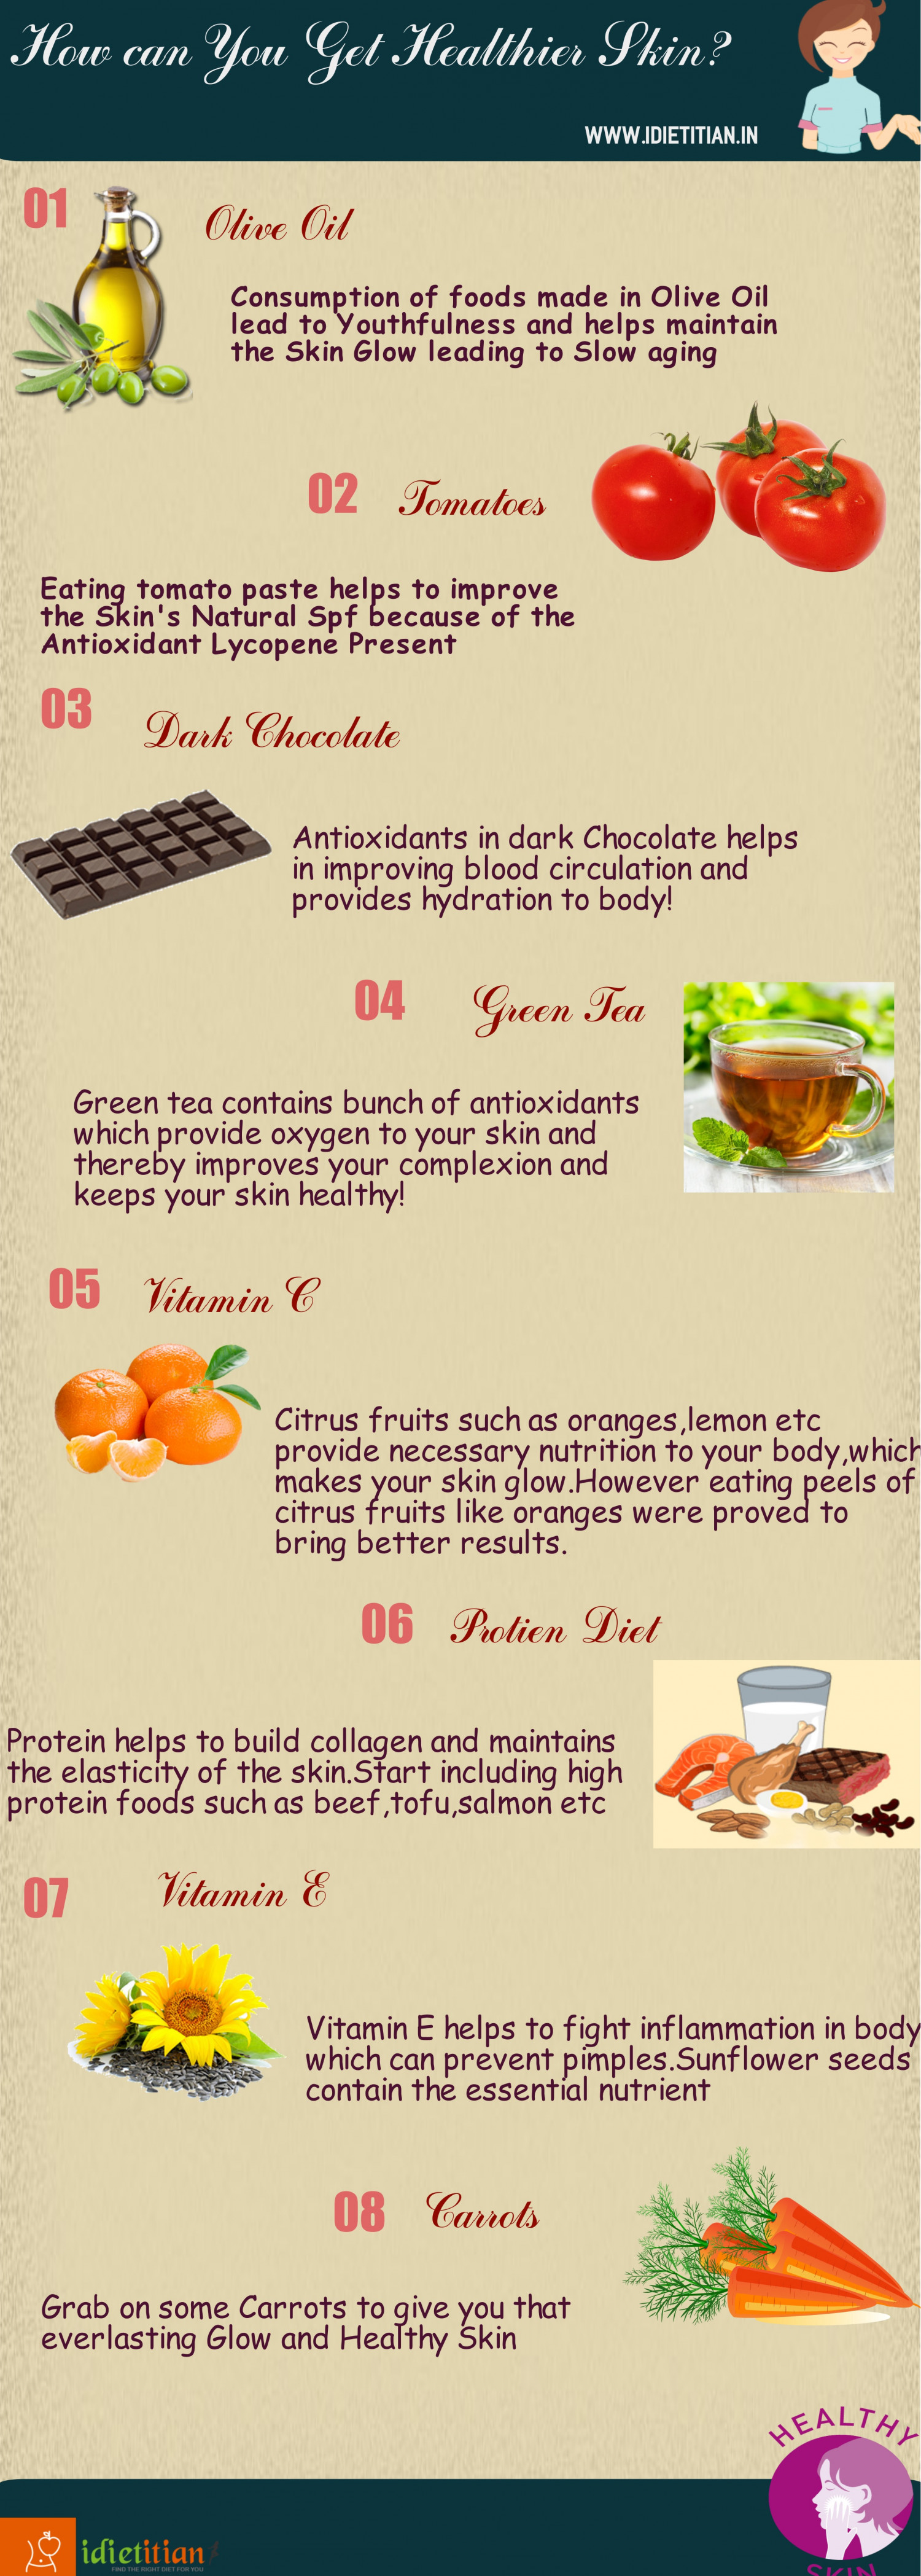 How Can You Get Healthier Skin? Infographic